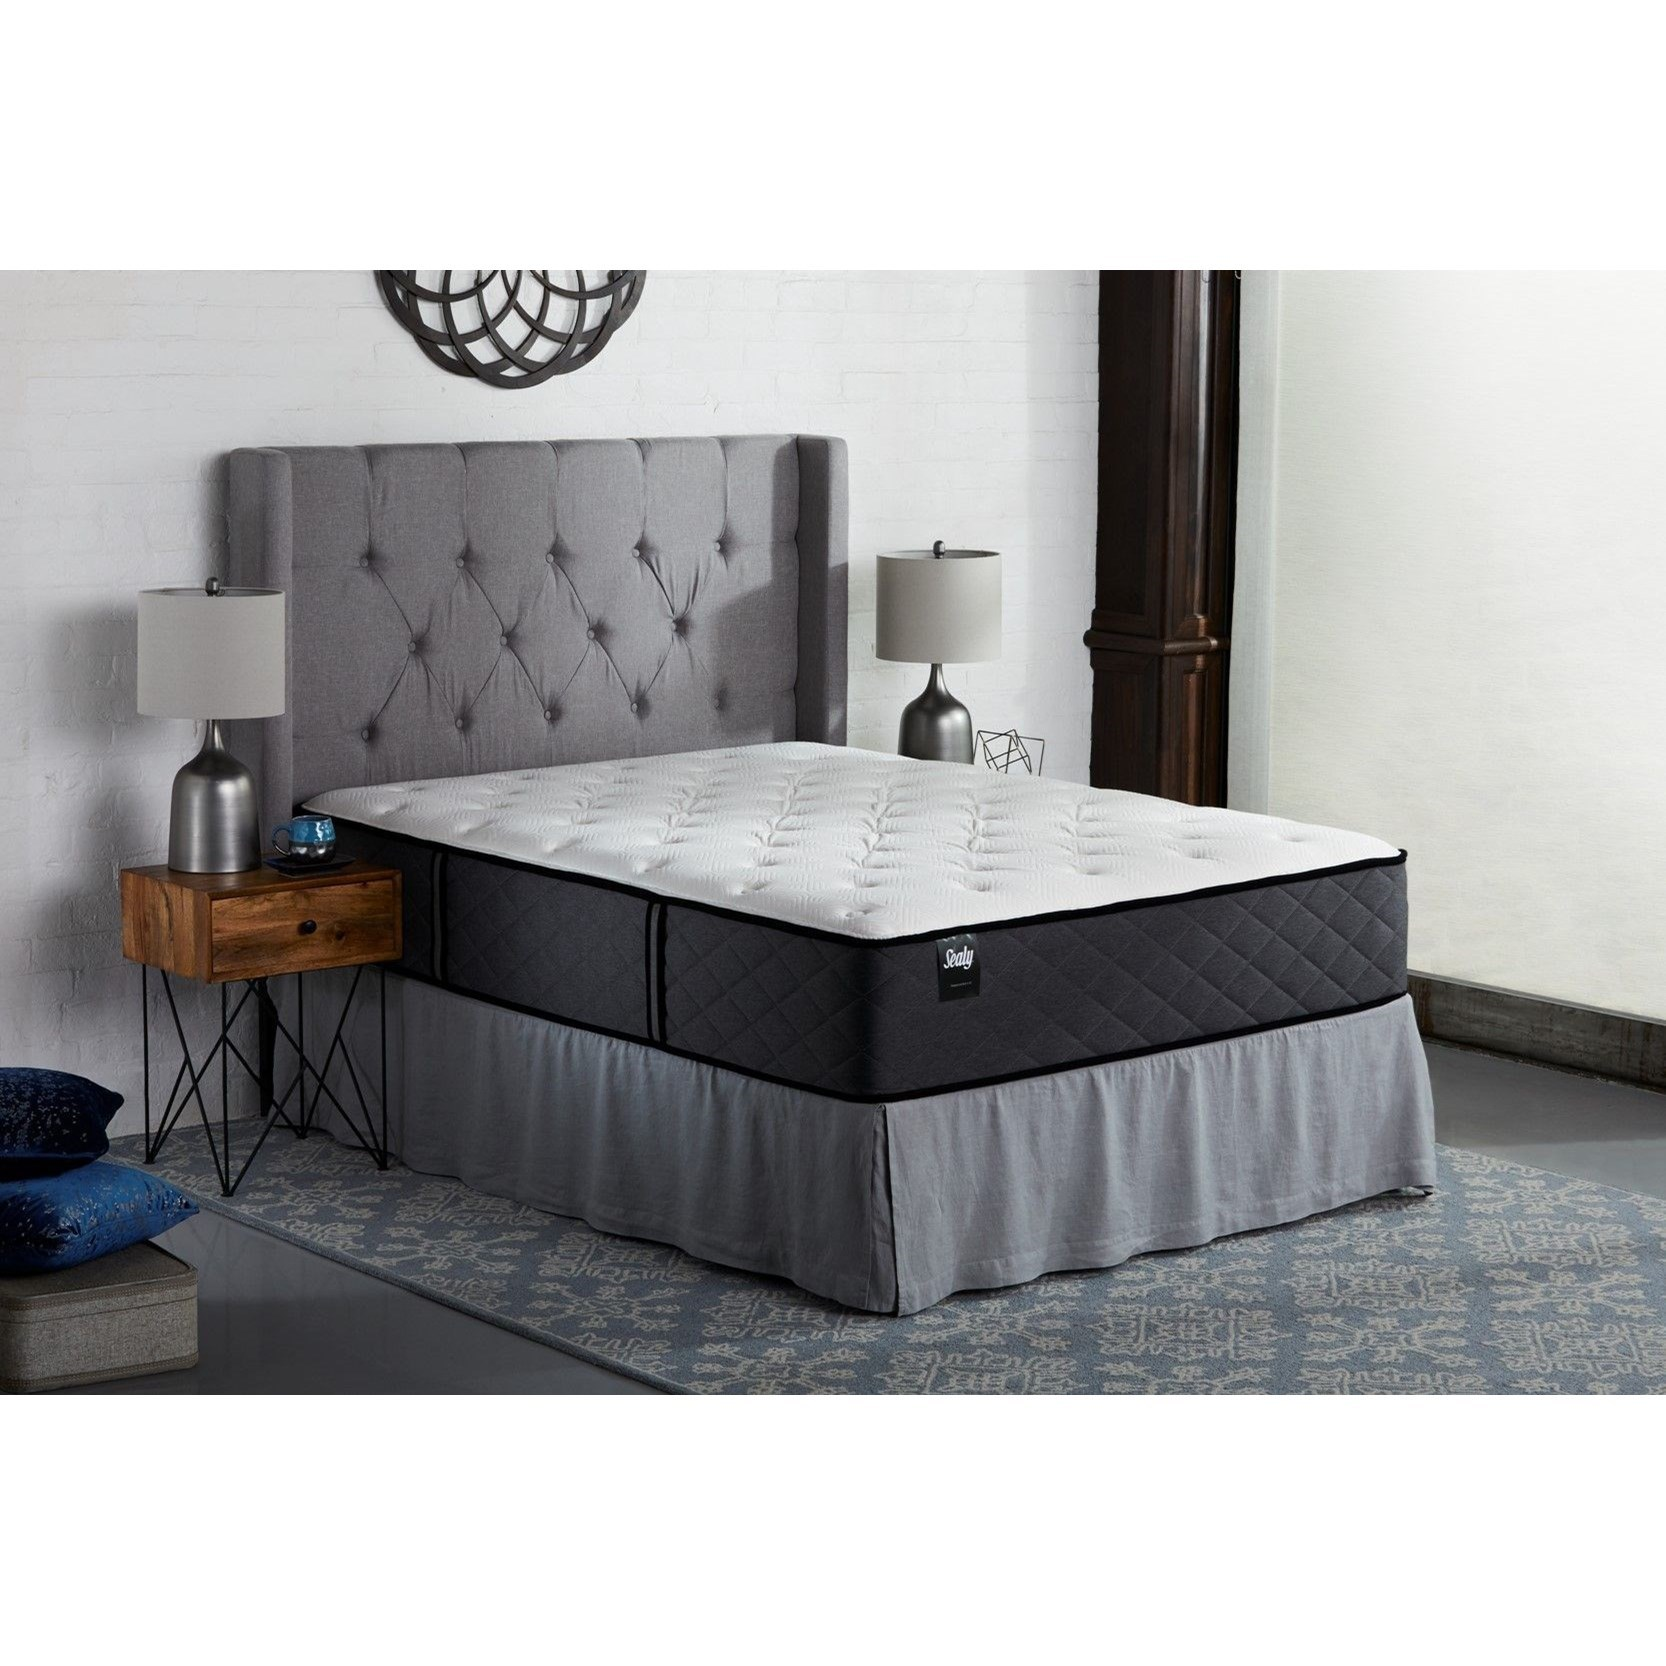 "S5 Firm TT Queen 14 1/2"" Firm Mattress Set by Sealy at Darvin Furniture"